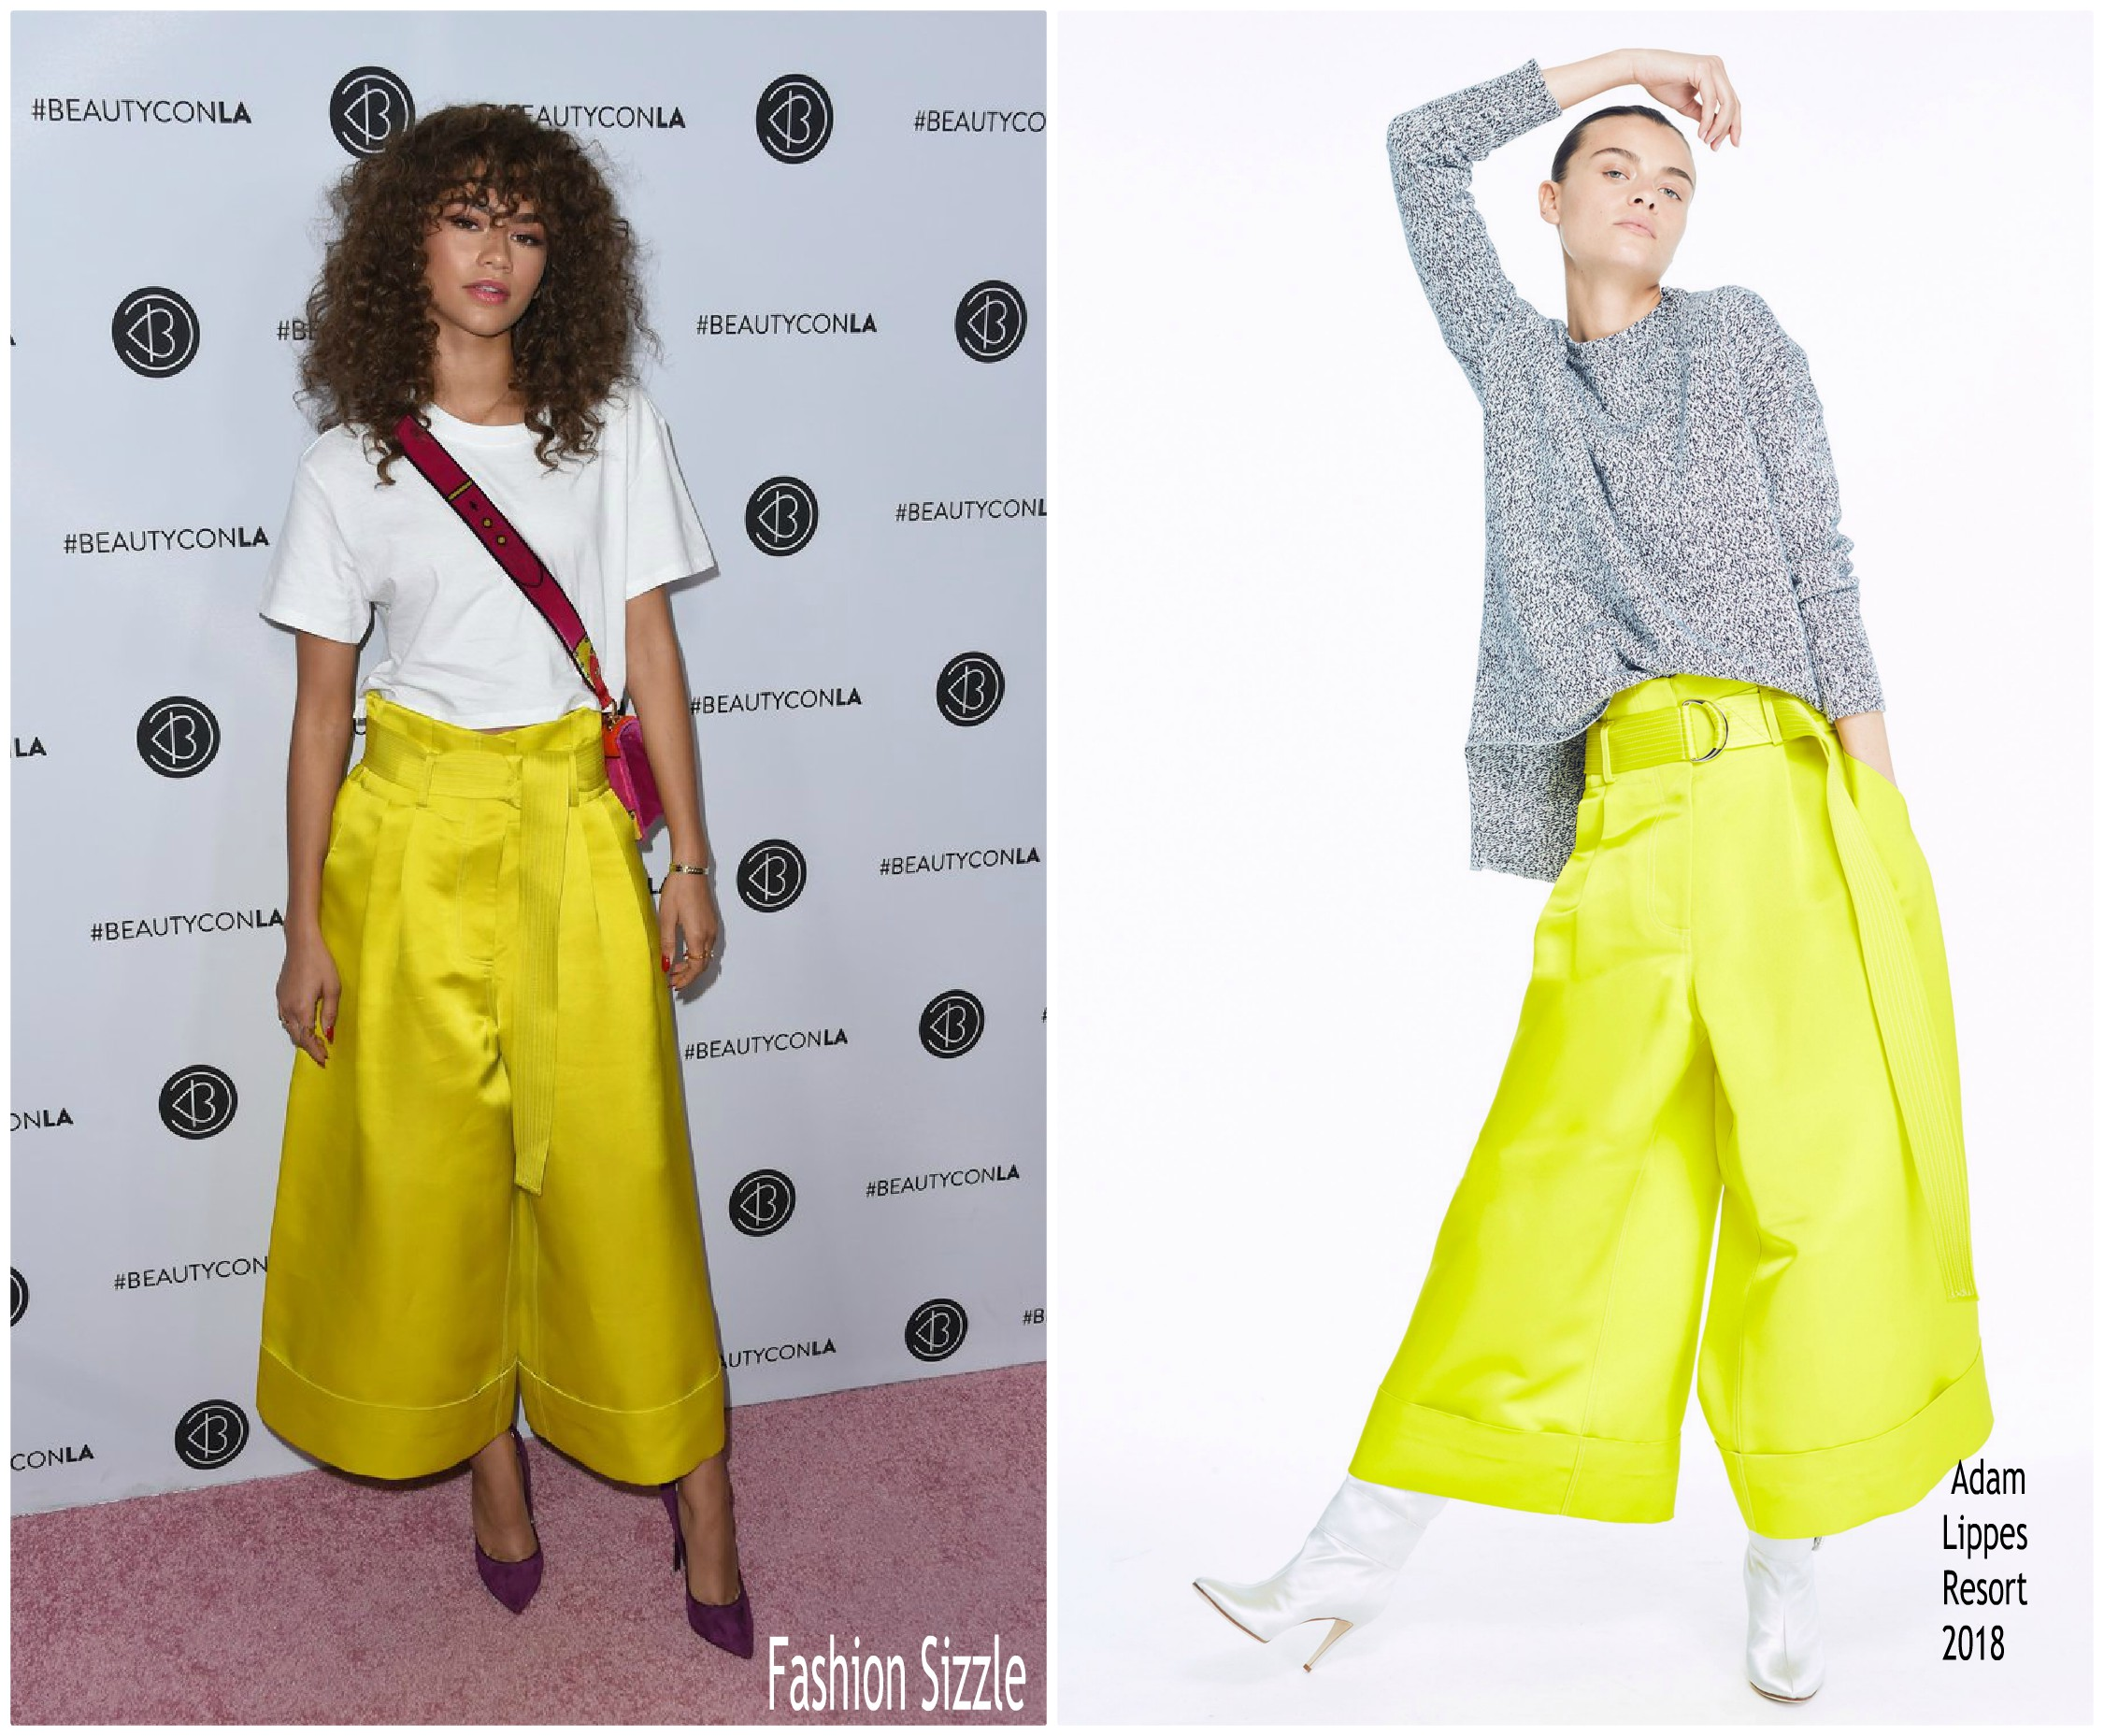 zendaya-coleman-in-adam-lippes-5th-annual-beautycon-festival